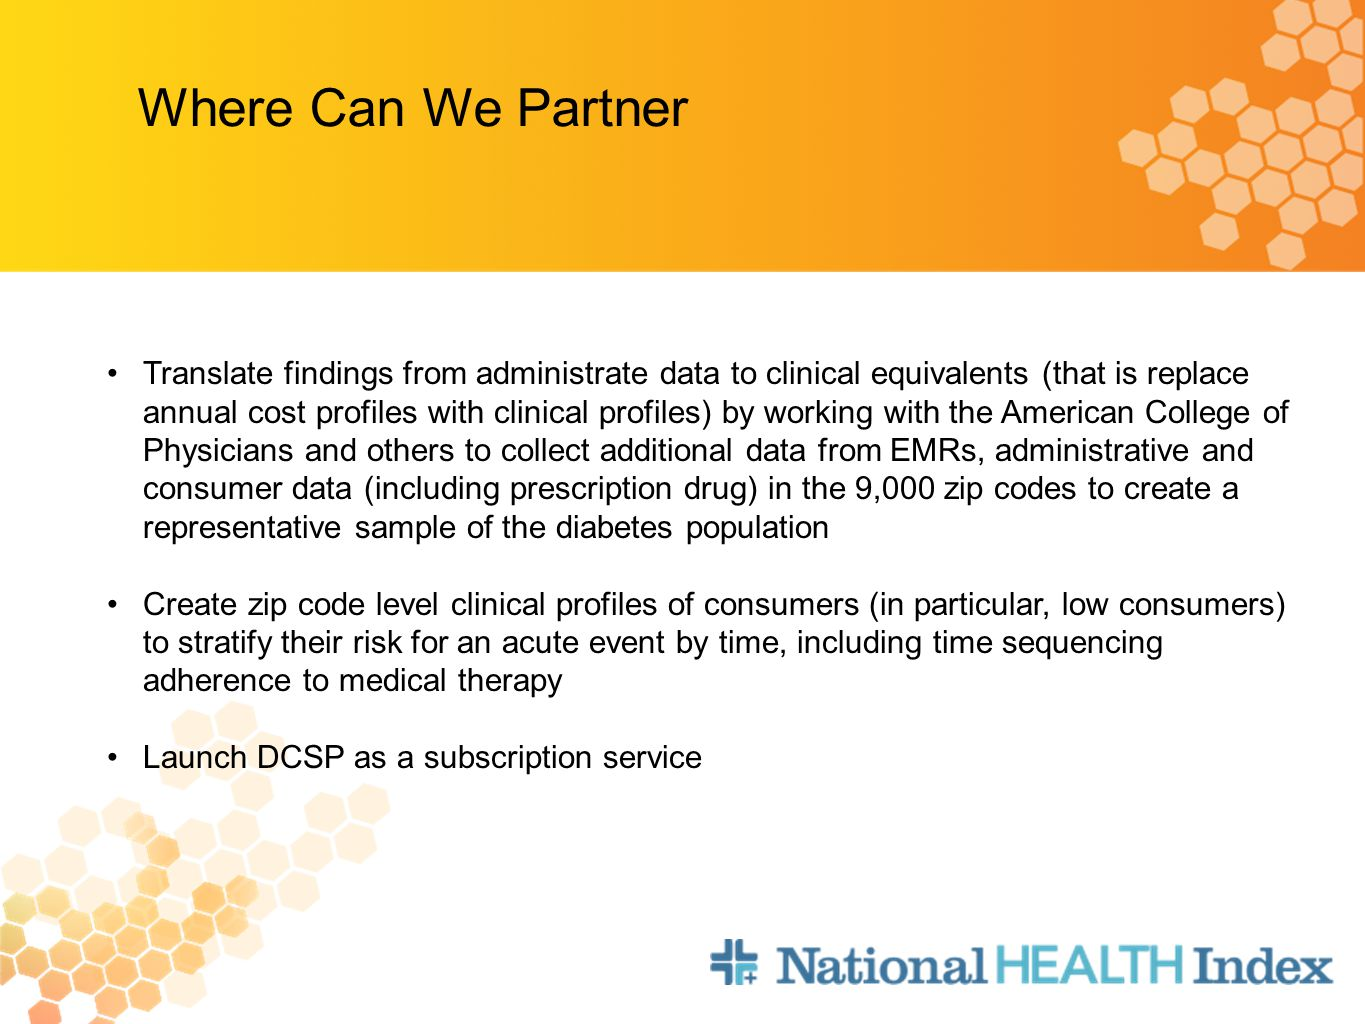 Where Can We Partner Translate findings from administrate data to clinical equivalents (that is replace annual cost profiles with clinical profiles) by working with the American College of Physicians and others to collect additional data from EMRs, administrative and consumer data (including prescription drug) in the 9,000 zip codes to create a representative sample of the diabetes population Create zip code level clinical profiles of consumers (in particular, low consumers) to stratify their risk for an acute event by time, including time sequencing adherence to medical therapy Launch DCSP as a subscription service